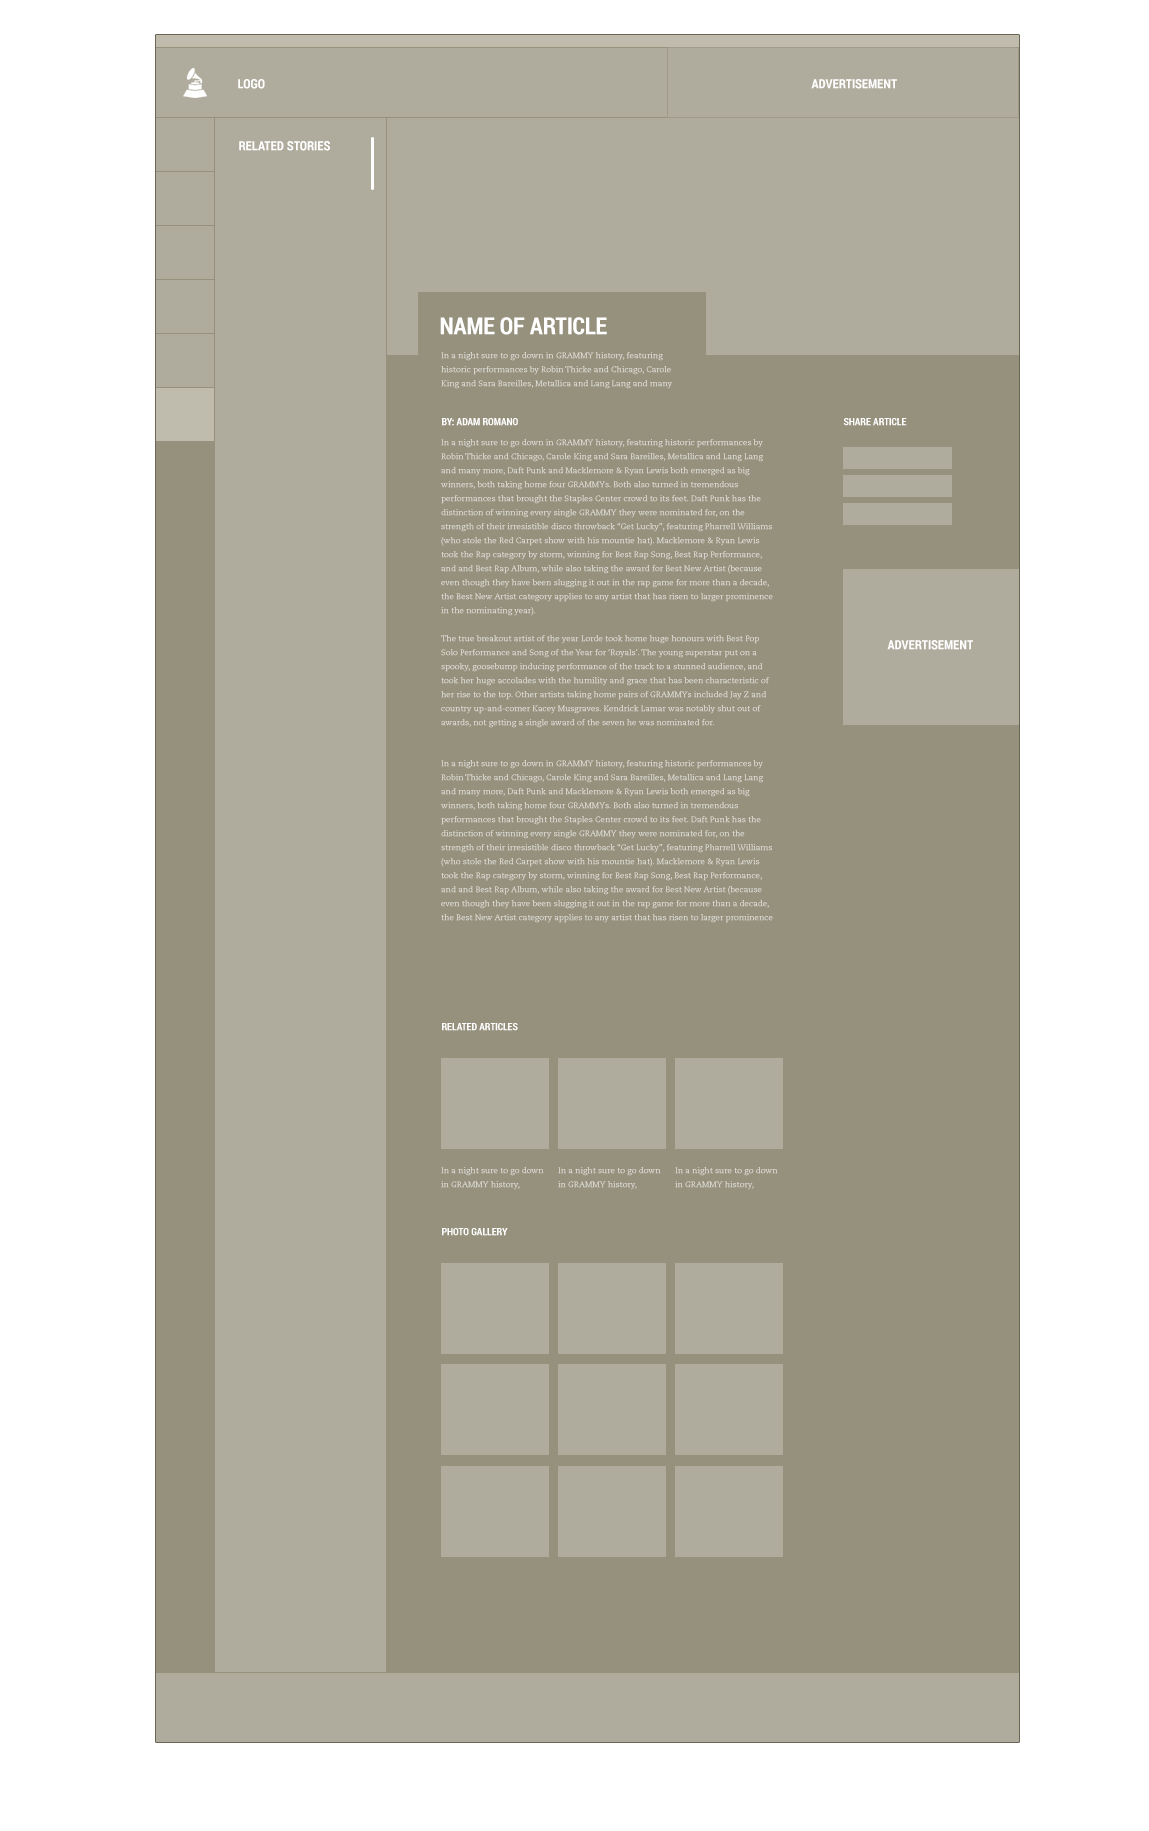 An example of the tablet wireframes that were created during the discovery phase of the Grammy's website